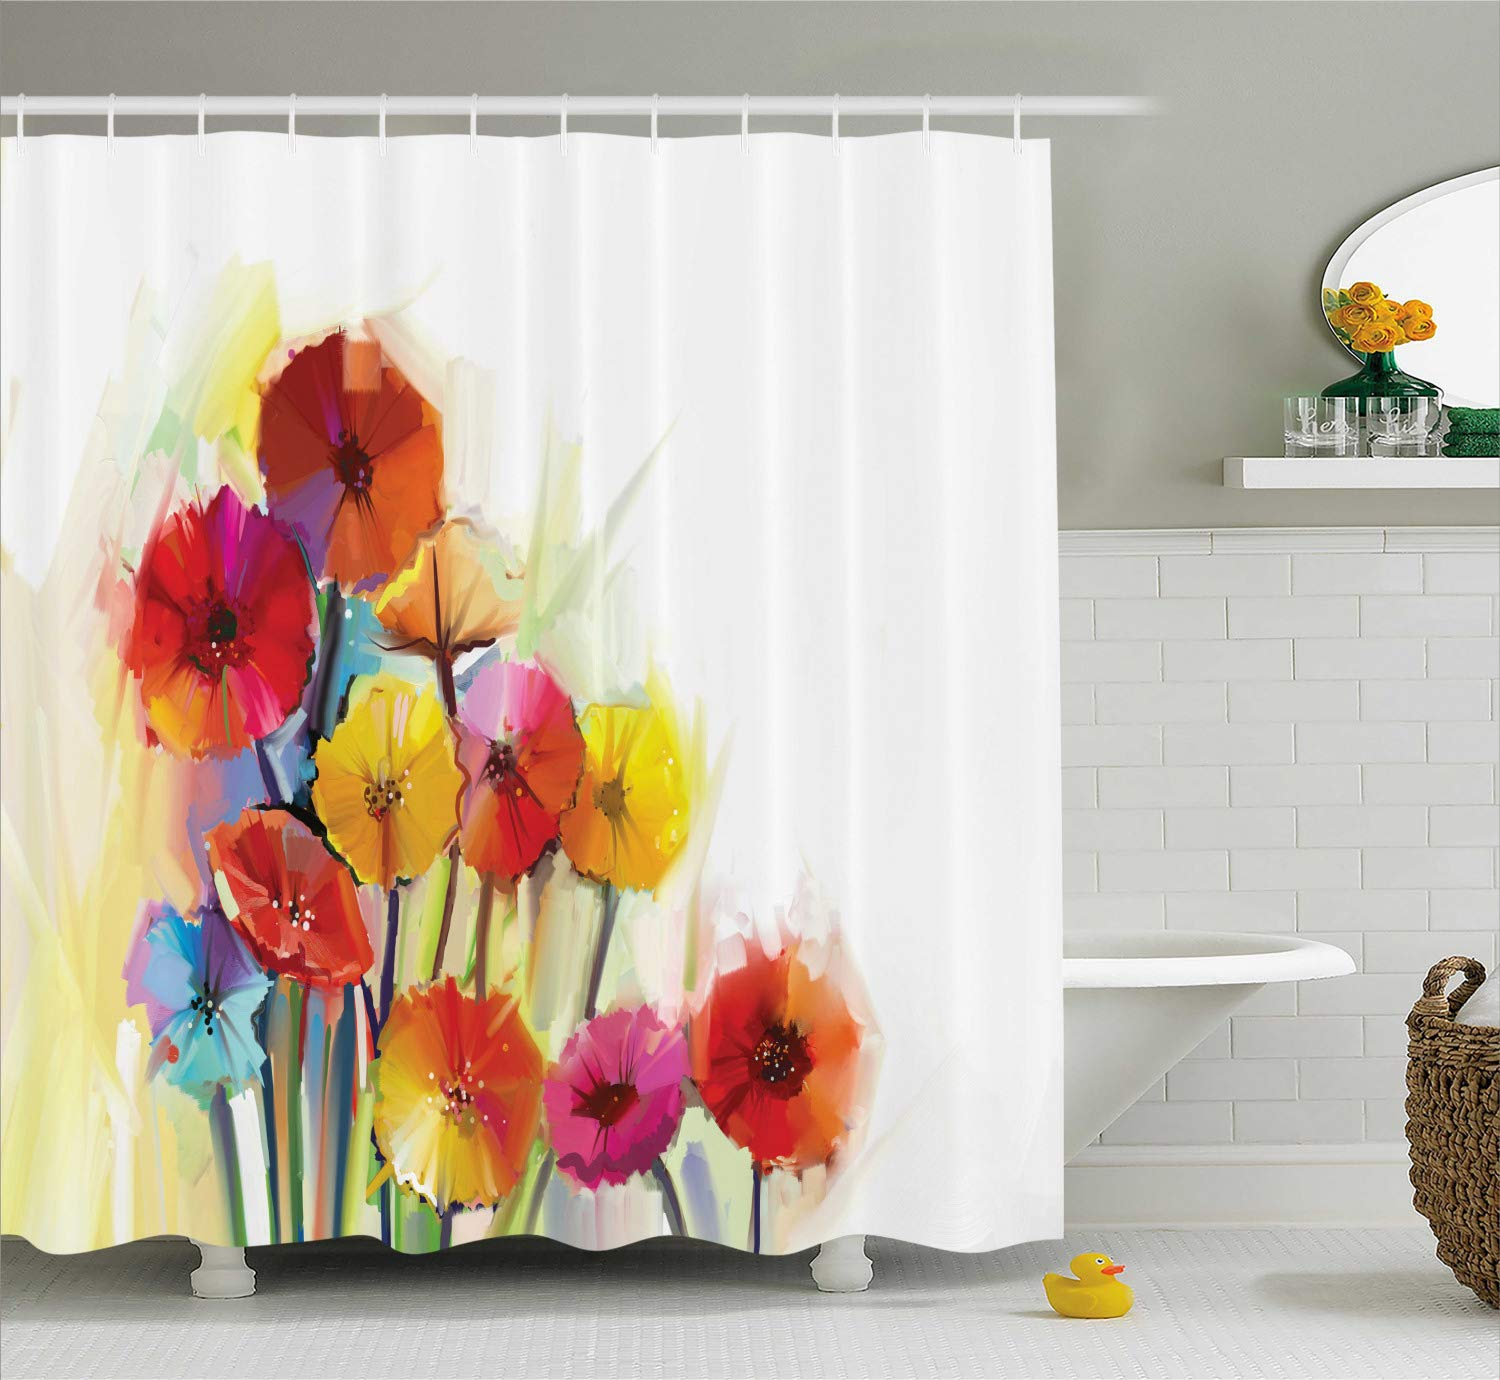 Ambesonne Flower Shower Curtain, Gerbera Bouquets Romantic Floral Arrangement Blossom Side of The Nature, Cloth Fabric Bathroom Decor Set with Hooks, 75'' Long, Orange Yellow